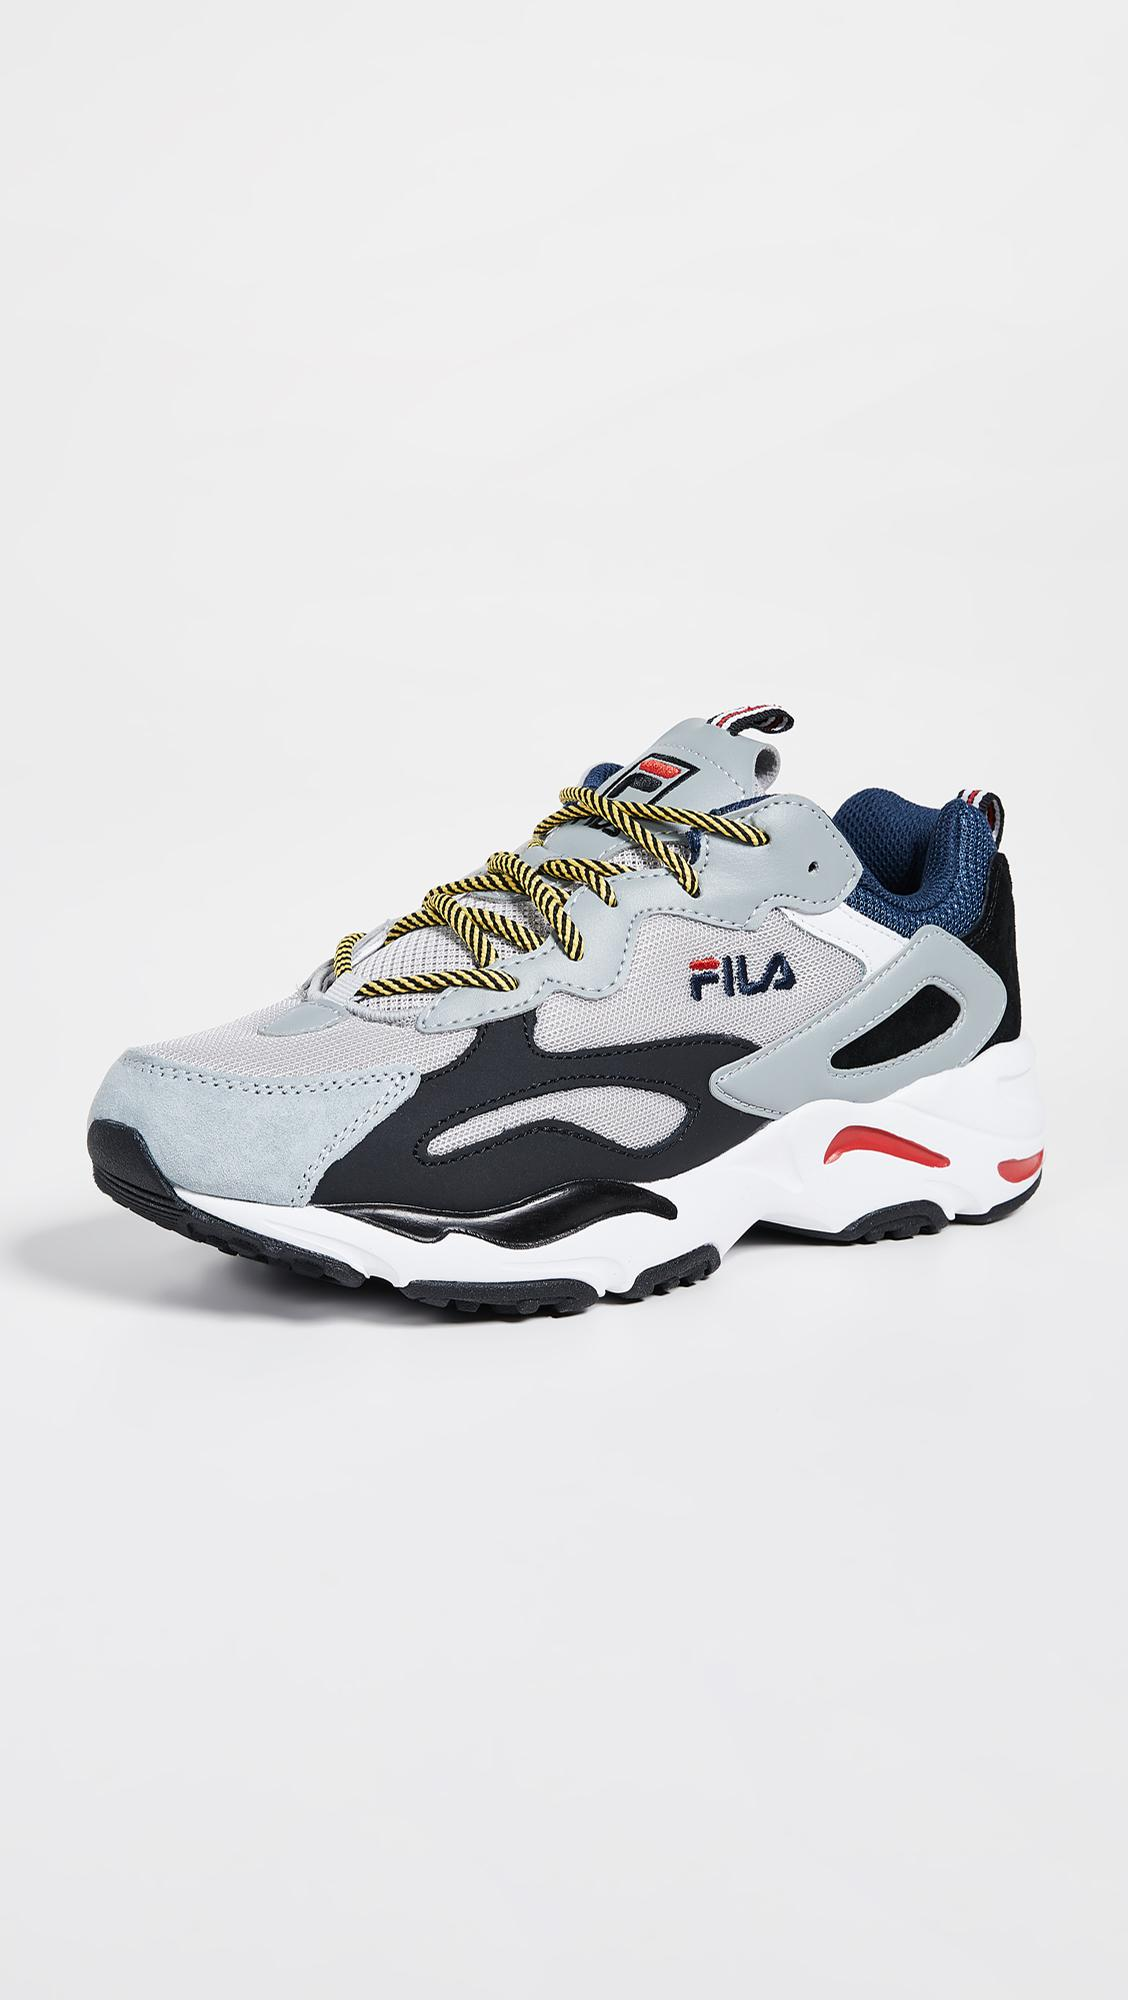 fila ray yellow blue factory outlet